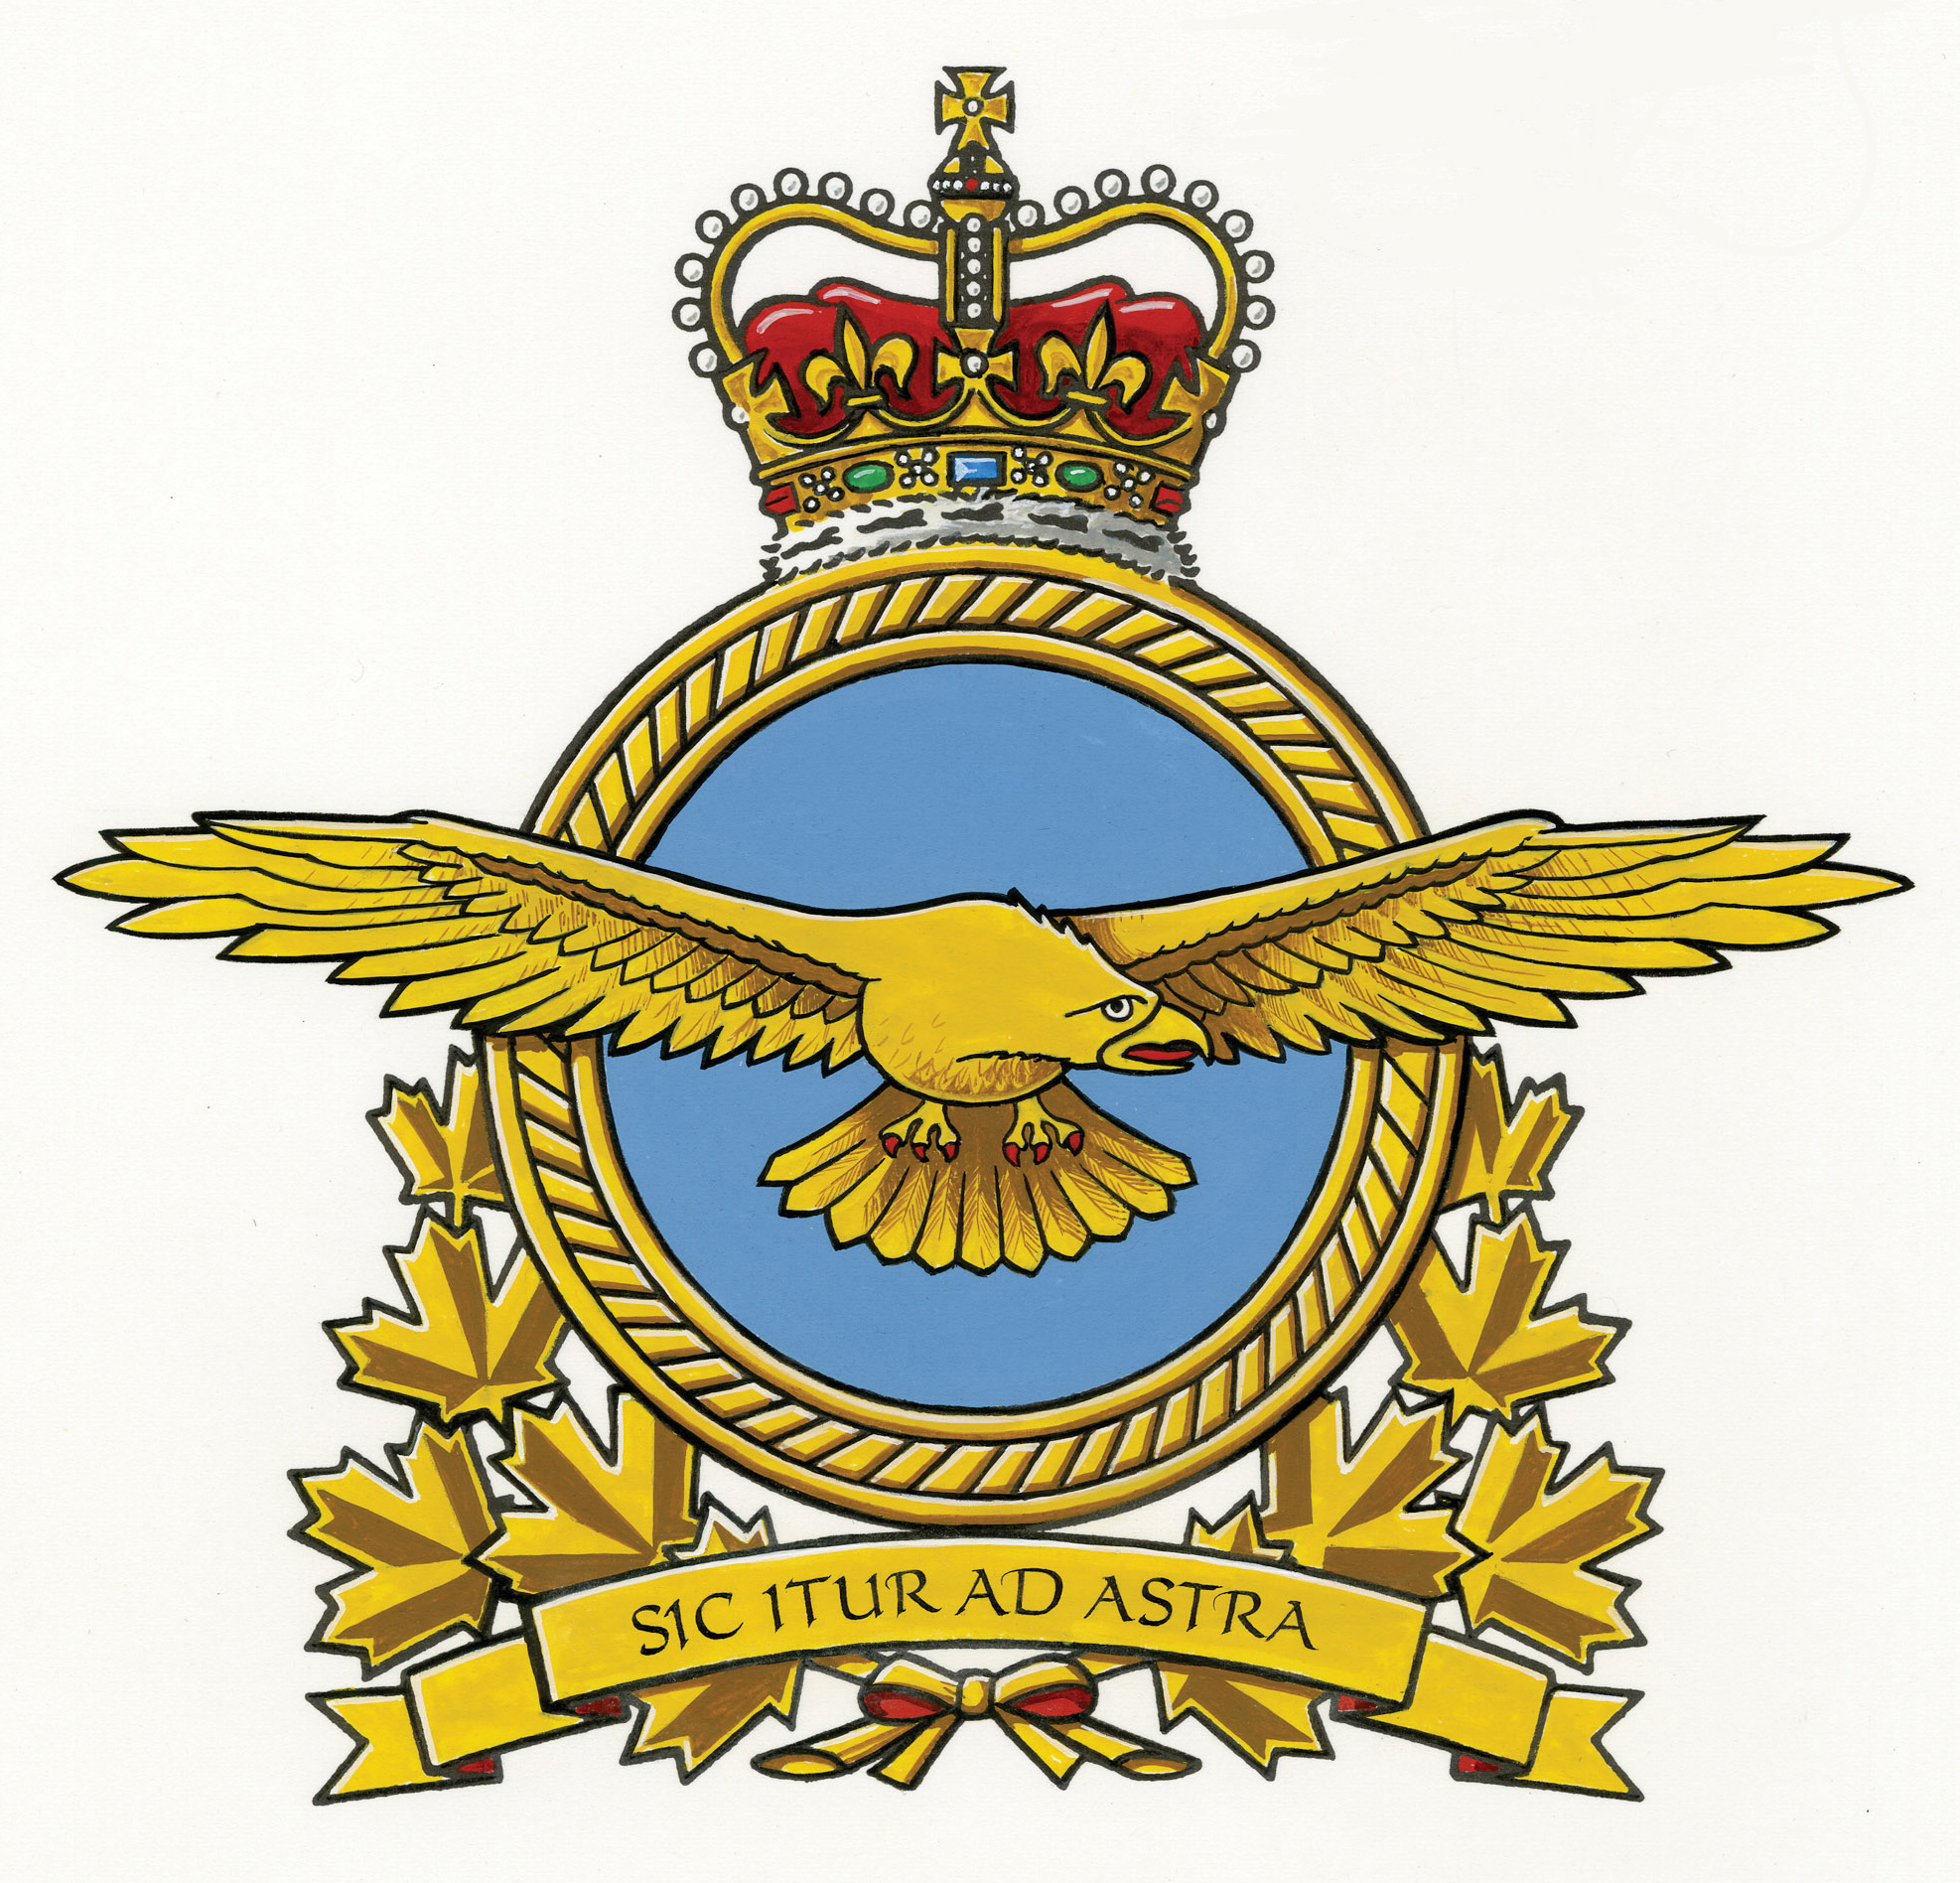 RCAF-badge-UB499b-tn.jpg